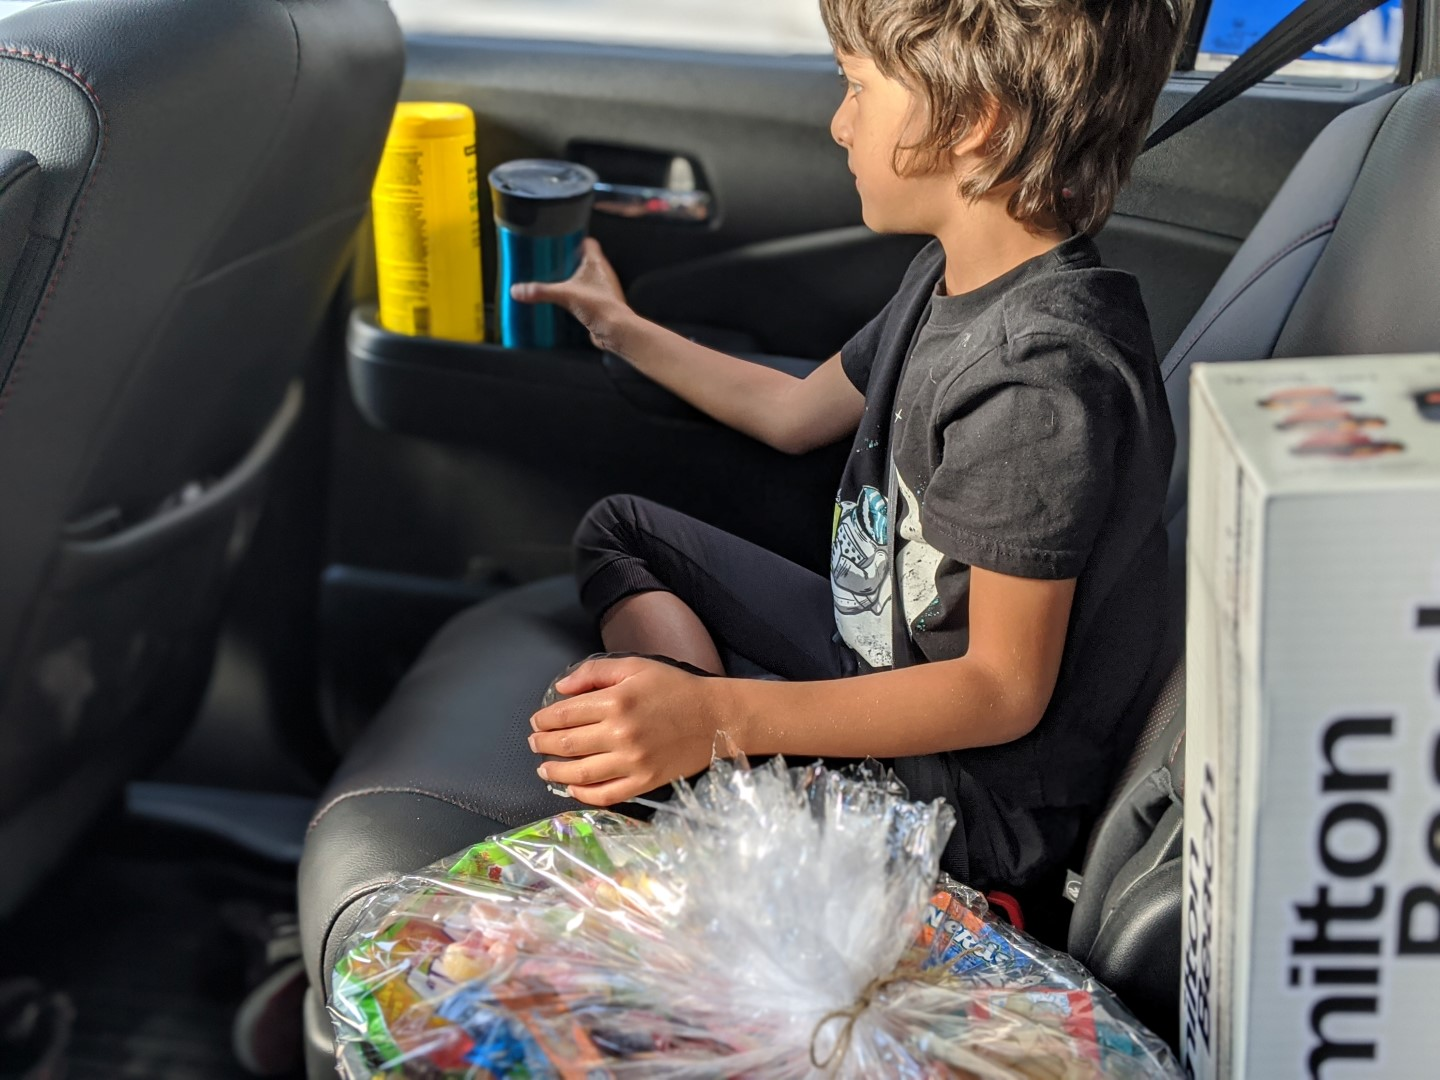 In the car with wipes during pandemic